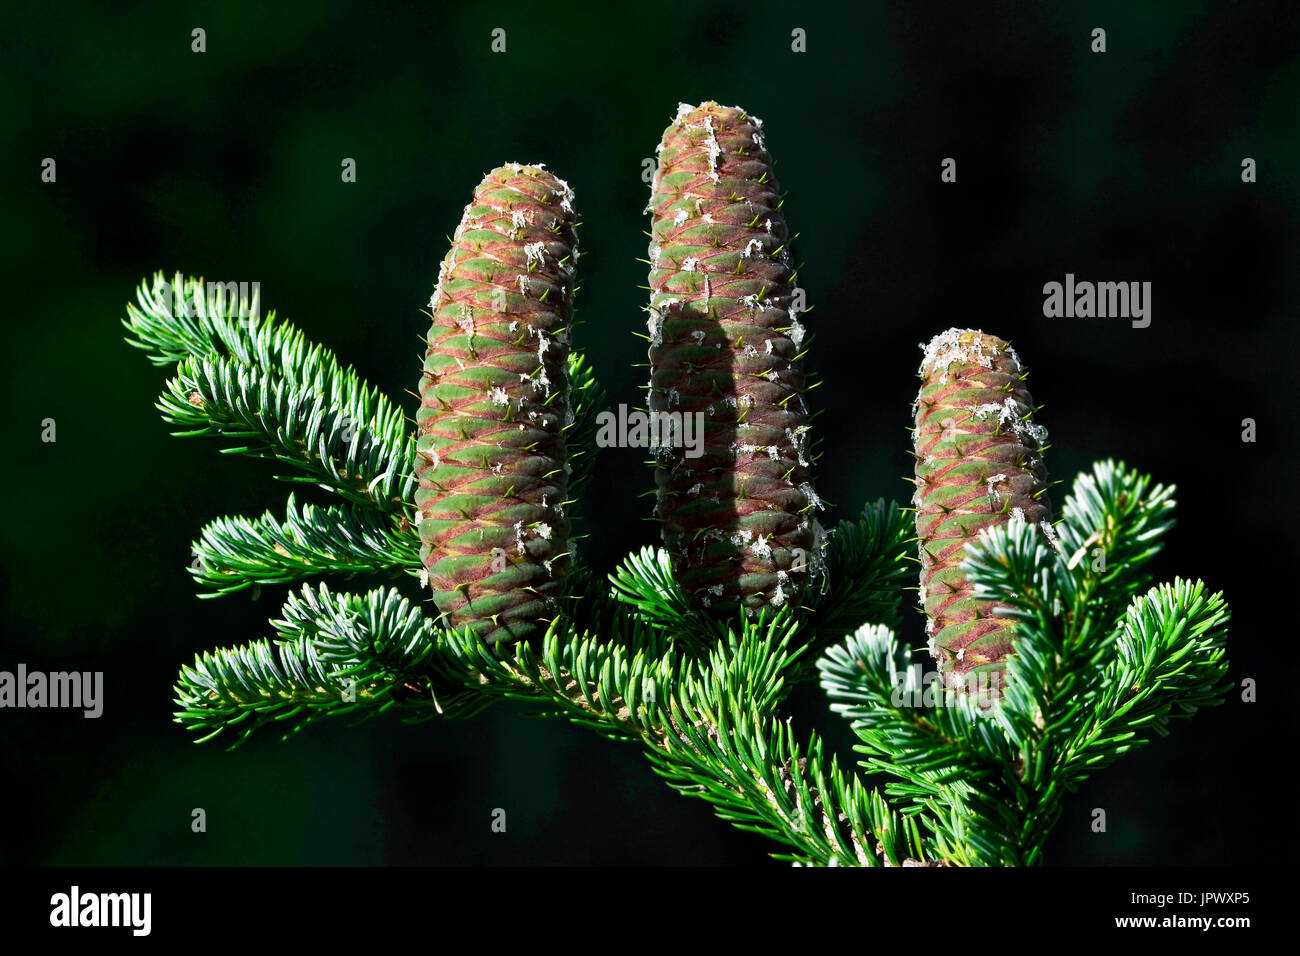 Silver fir cones in Catalonia - Spain - Stock Image